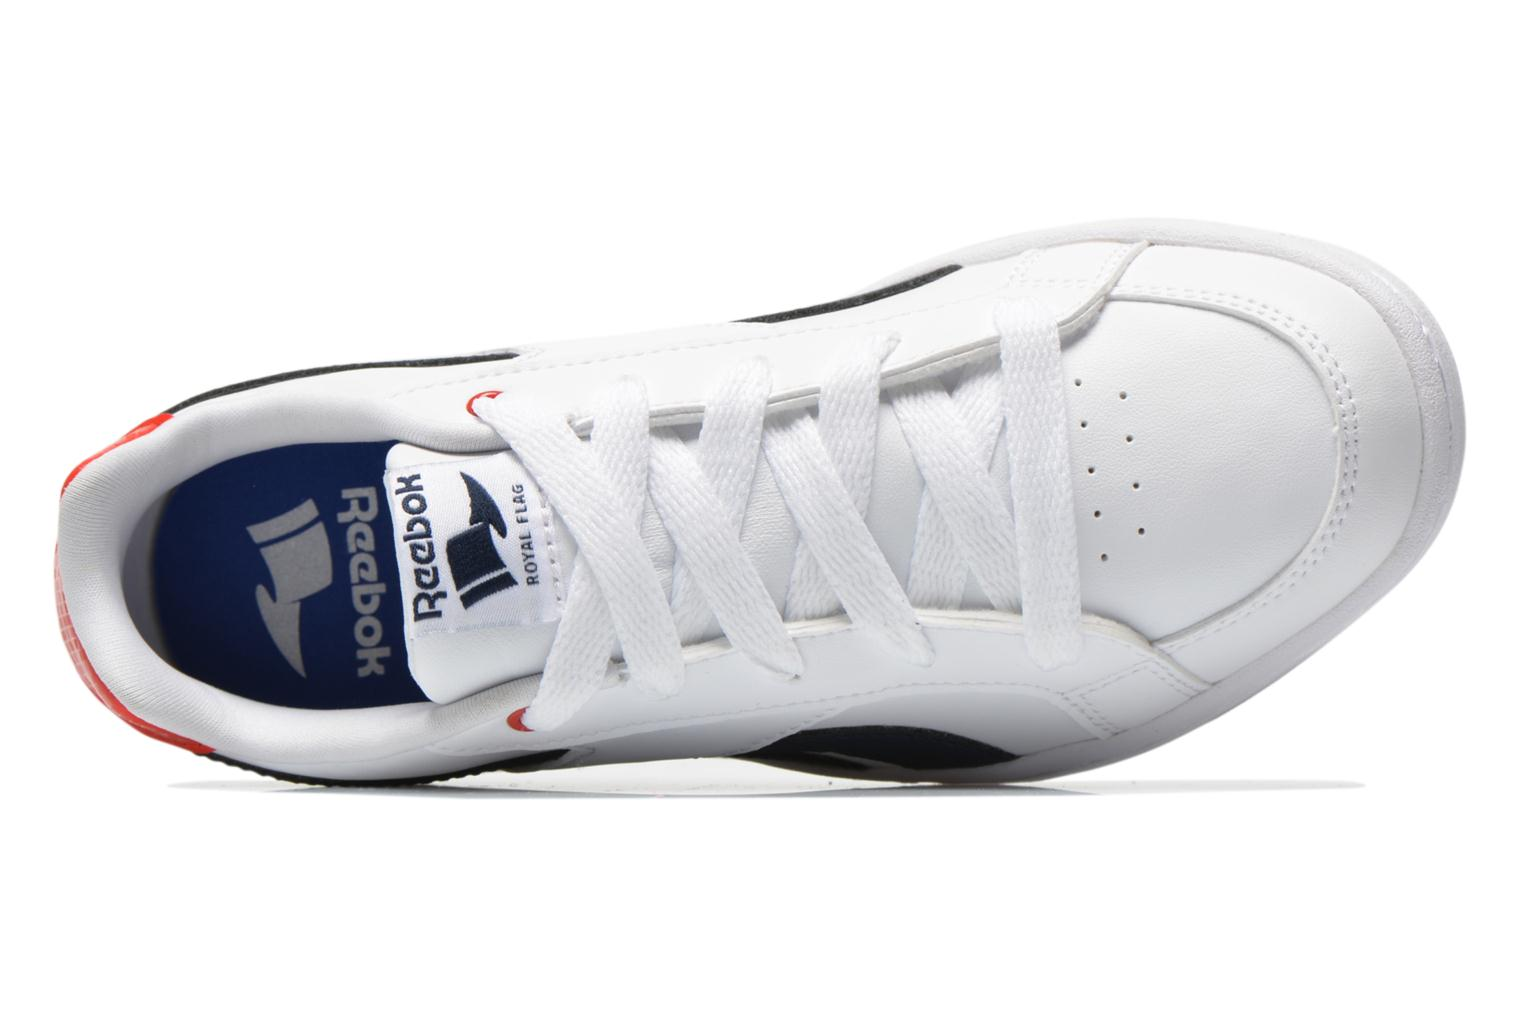 Reebok Royal Prime White/Navy/Motor Red